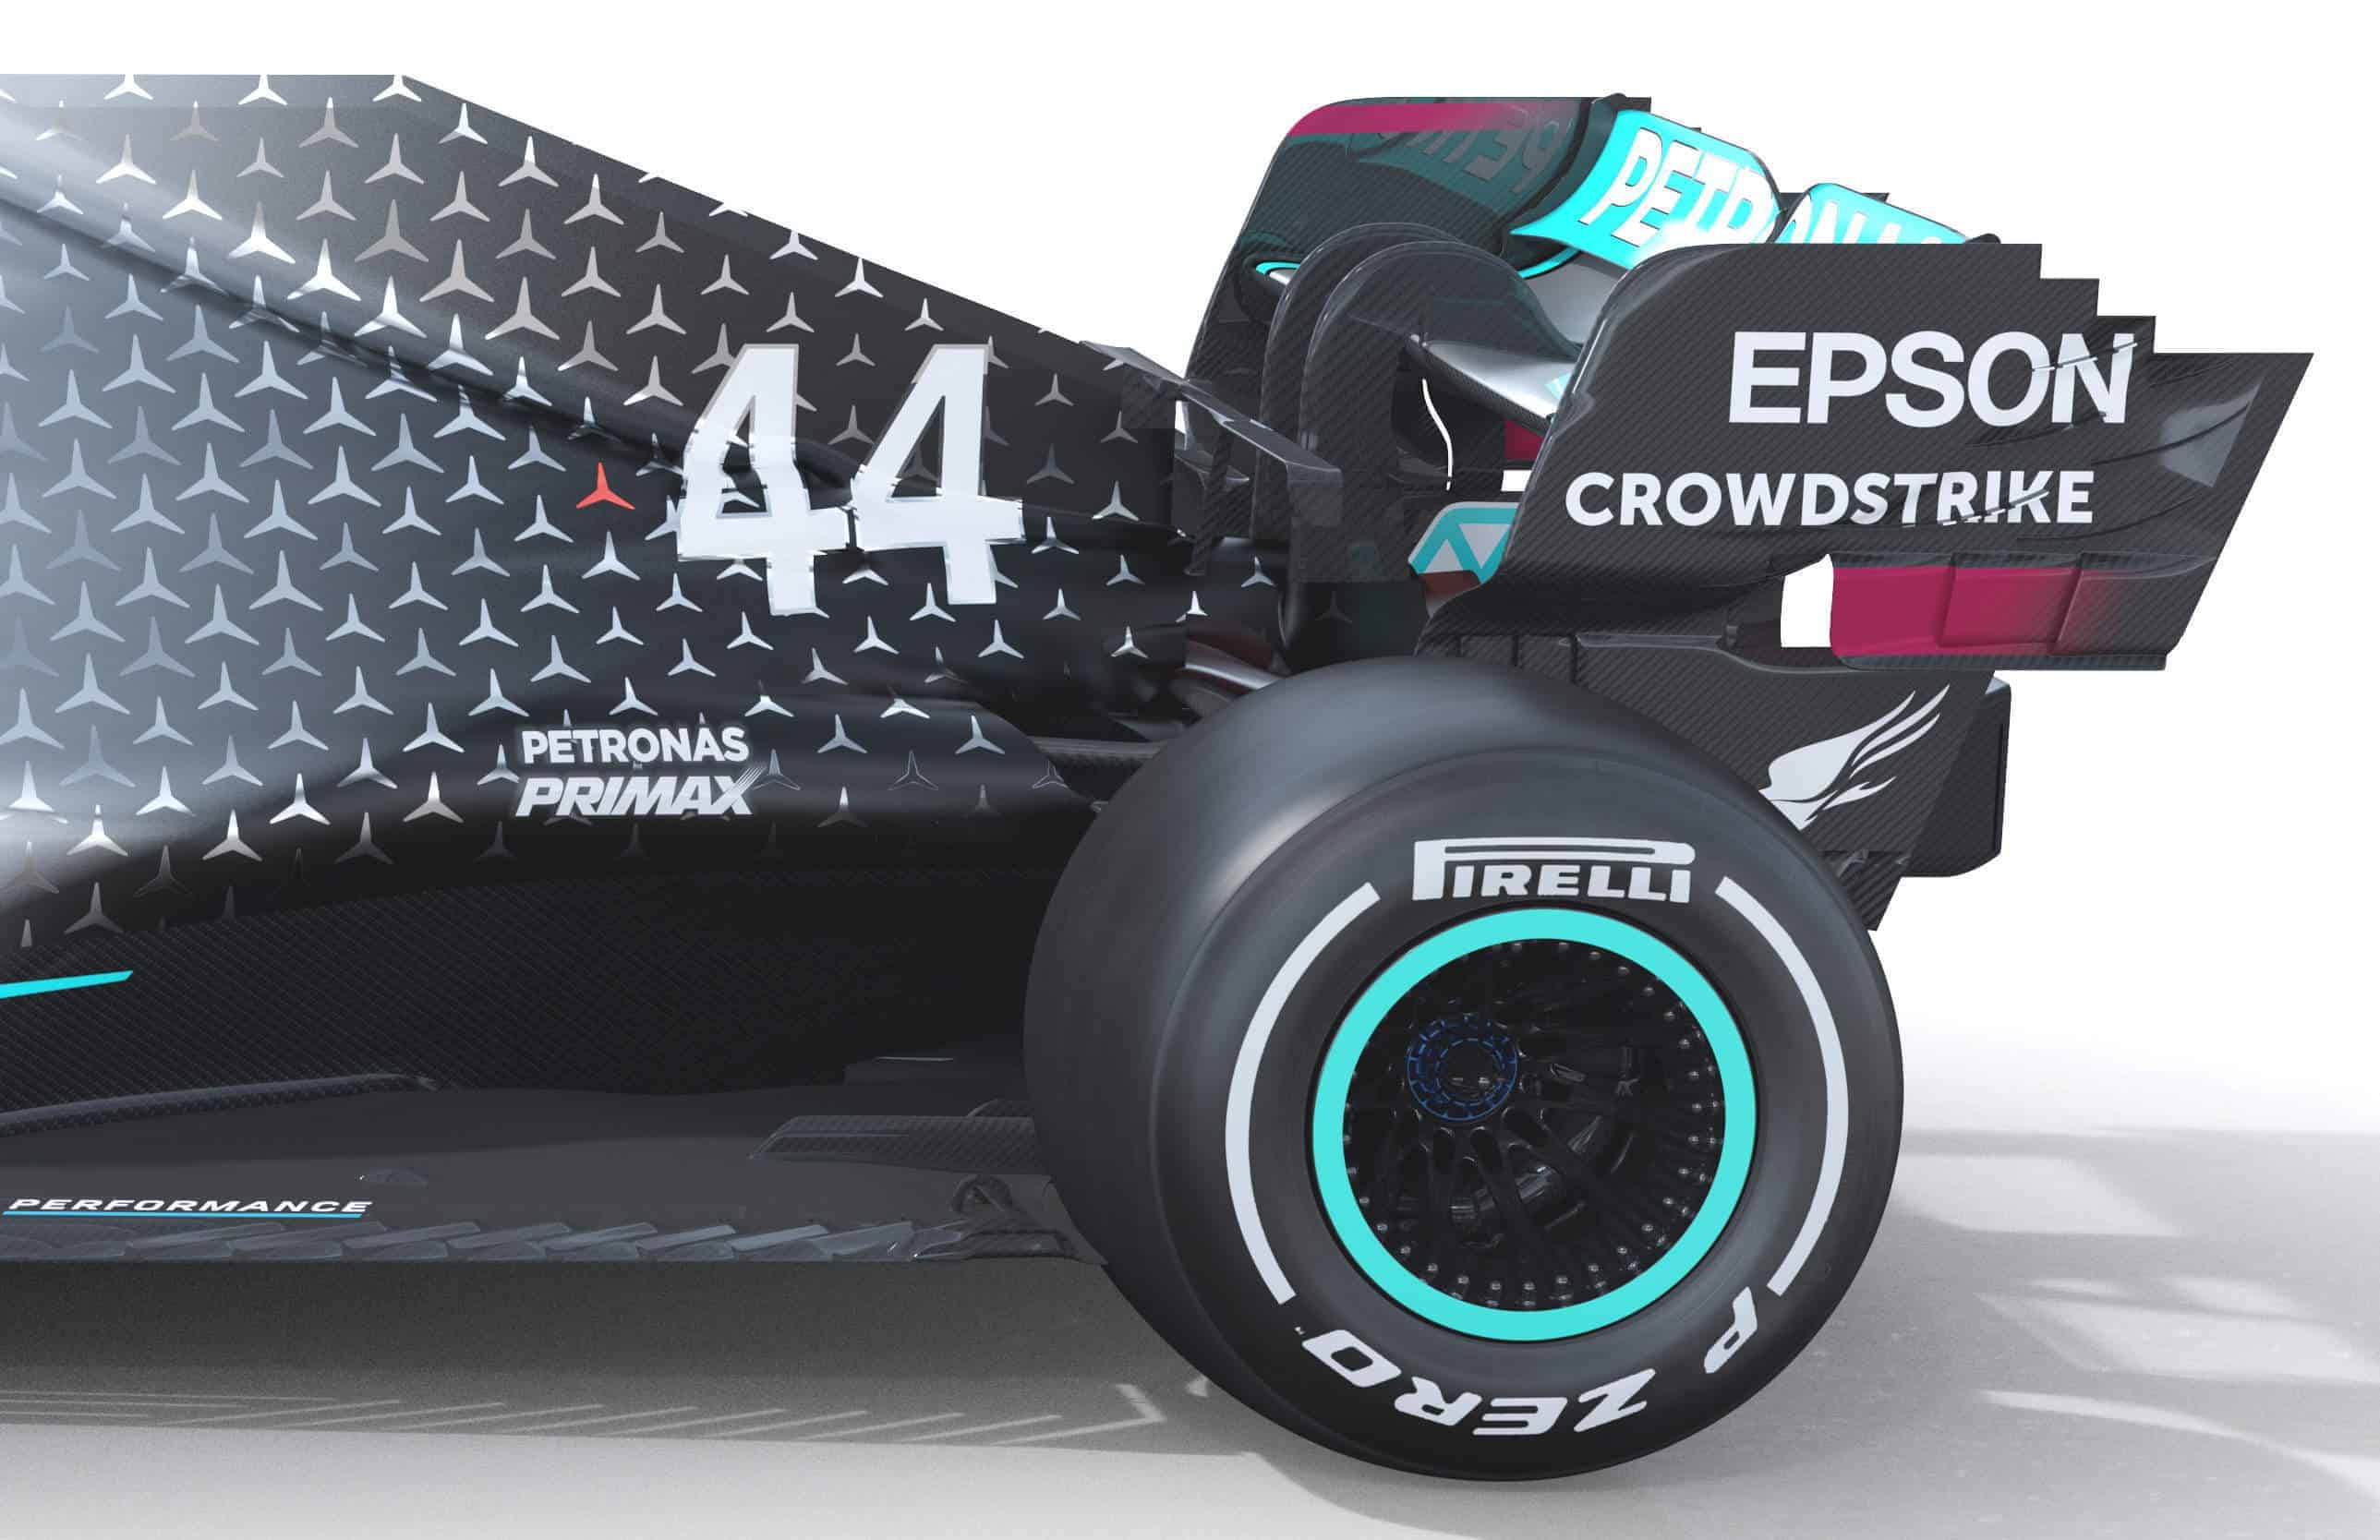 2020 F1 Mercedes F1 W11 rear end side view Photo Daimler Edited by MAXF1net